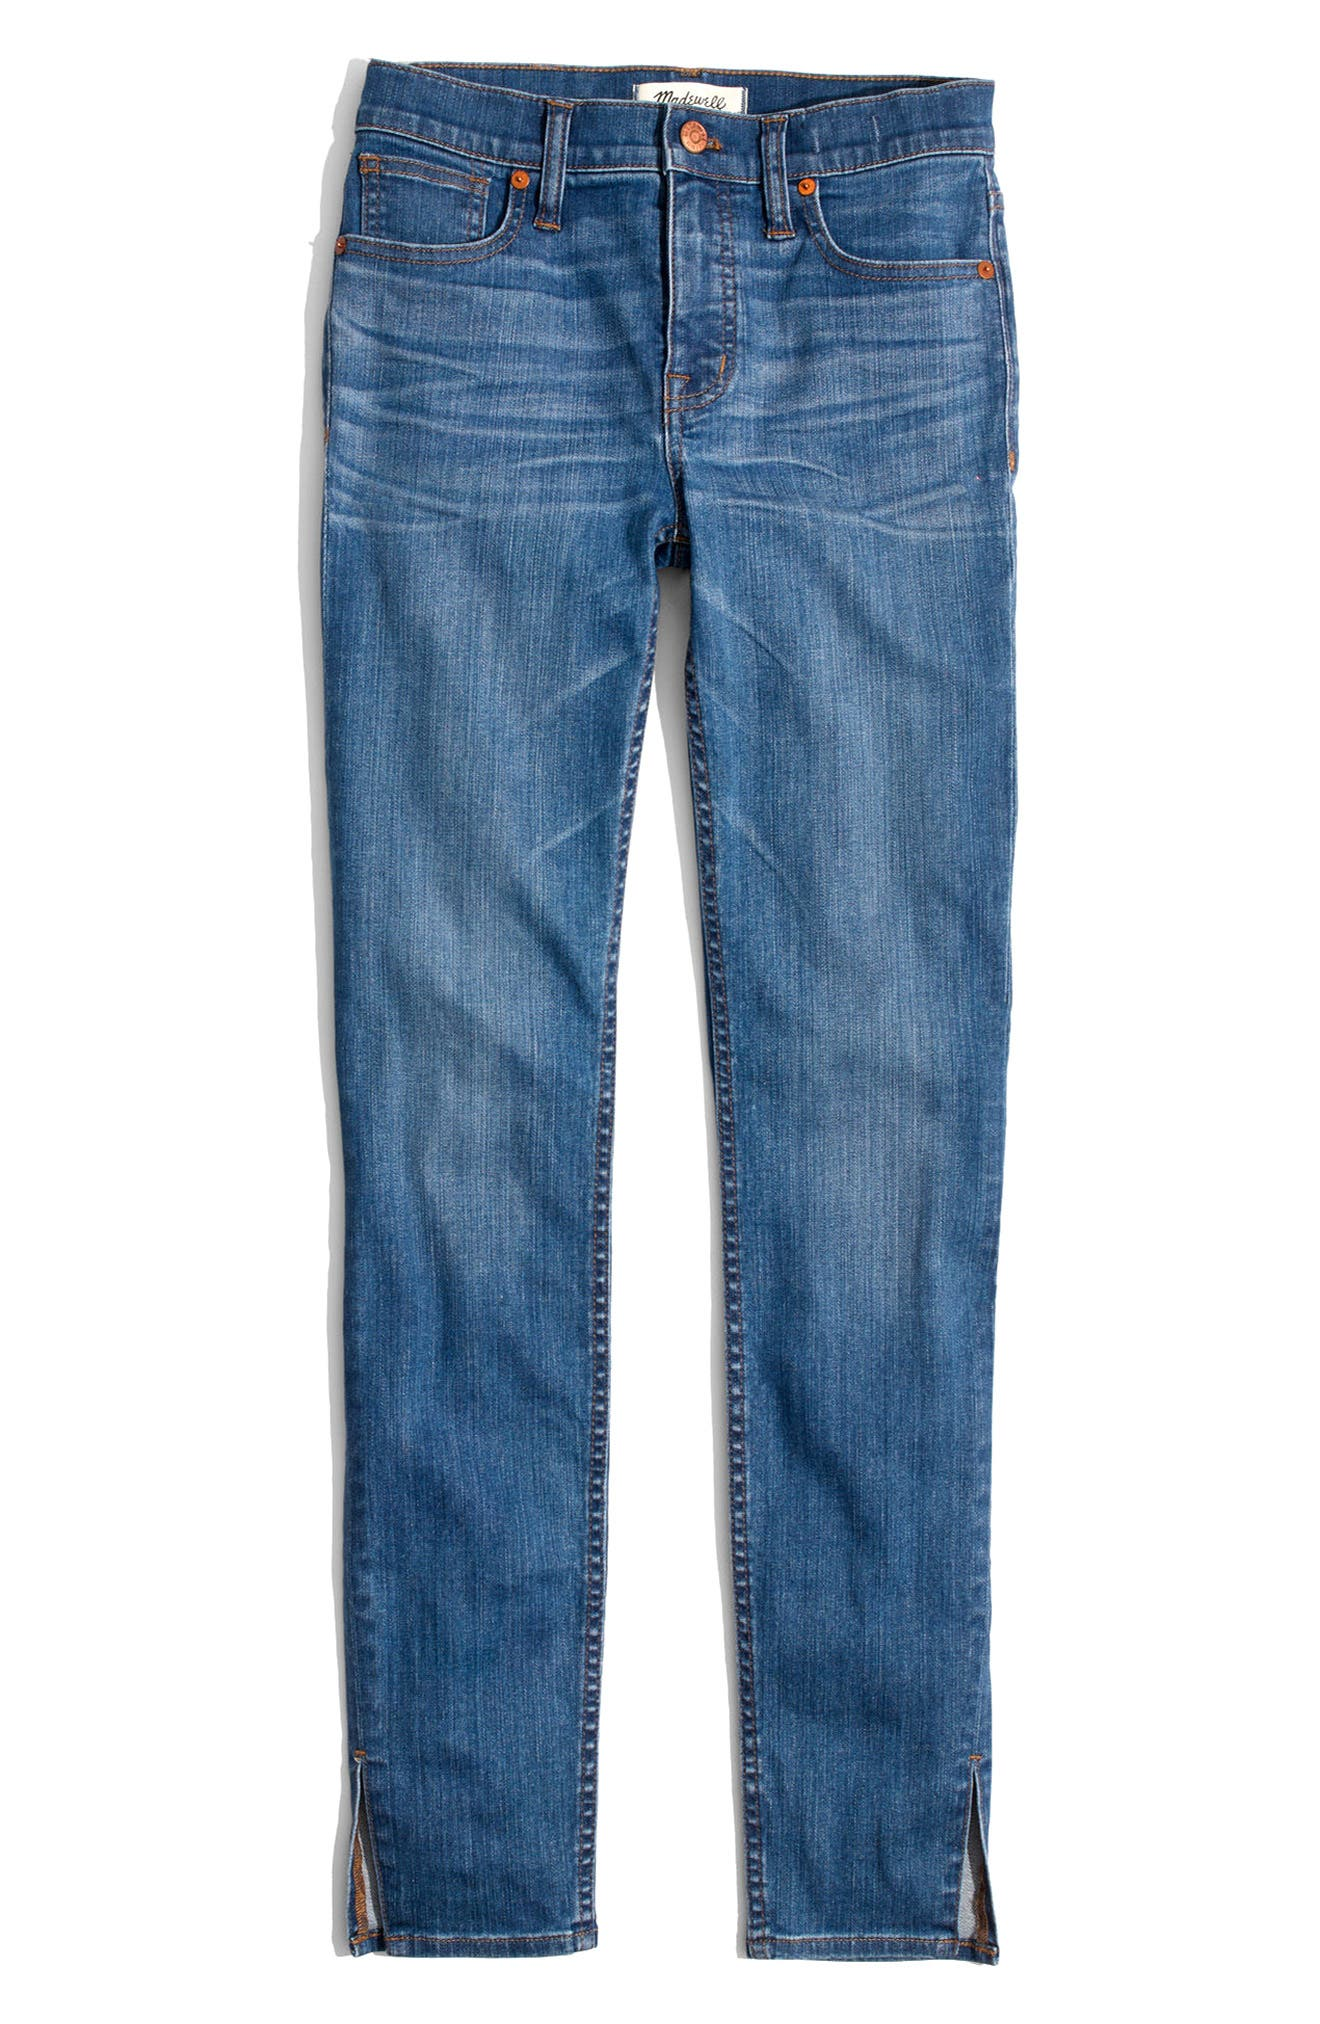 MADEWELL,                             9-Inch High-Rise Skinny Jeans: Side-Slit Edition,                             Alternate thumbnail 5, color,                             400